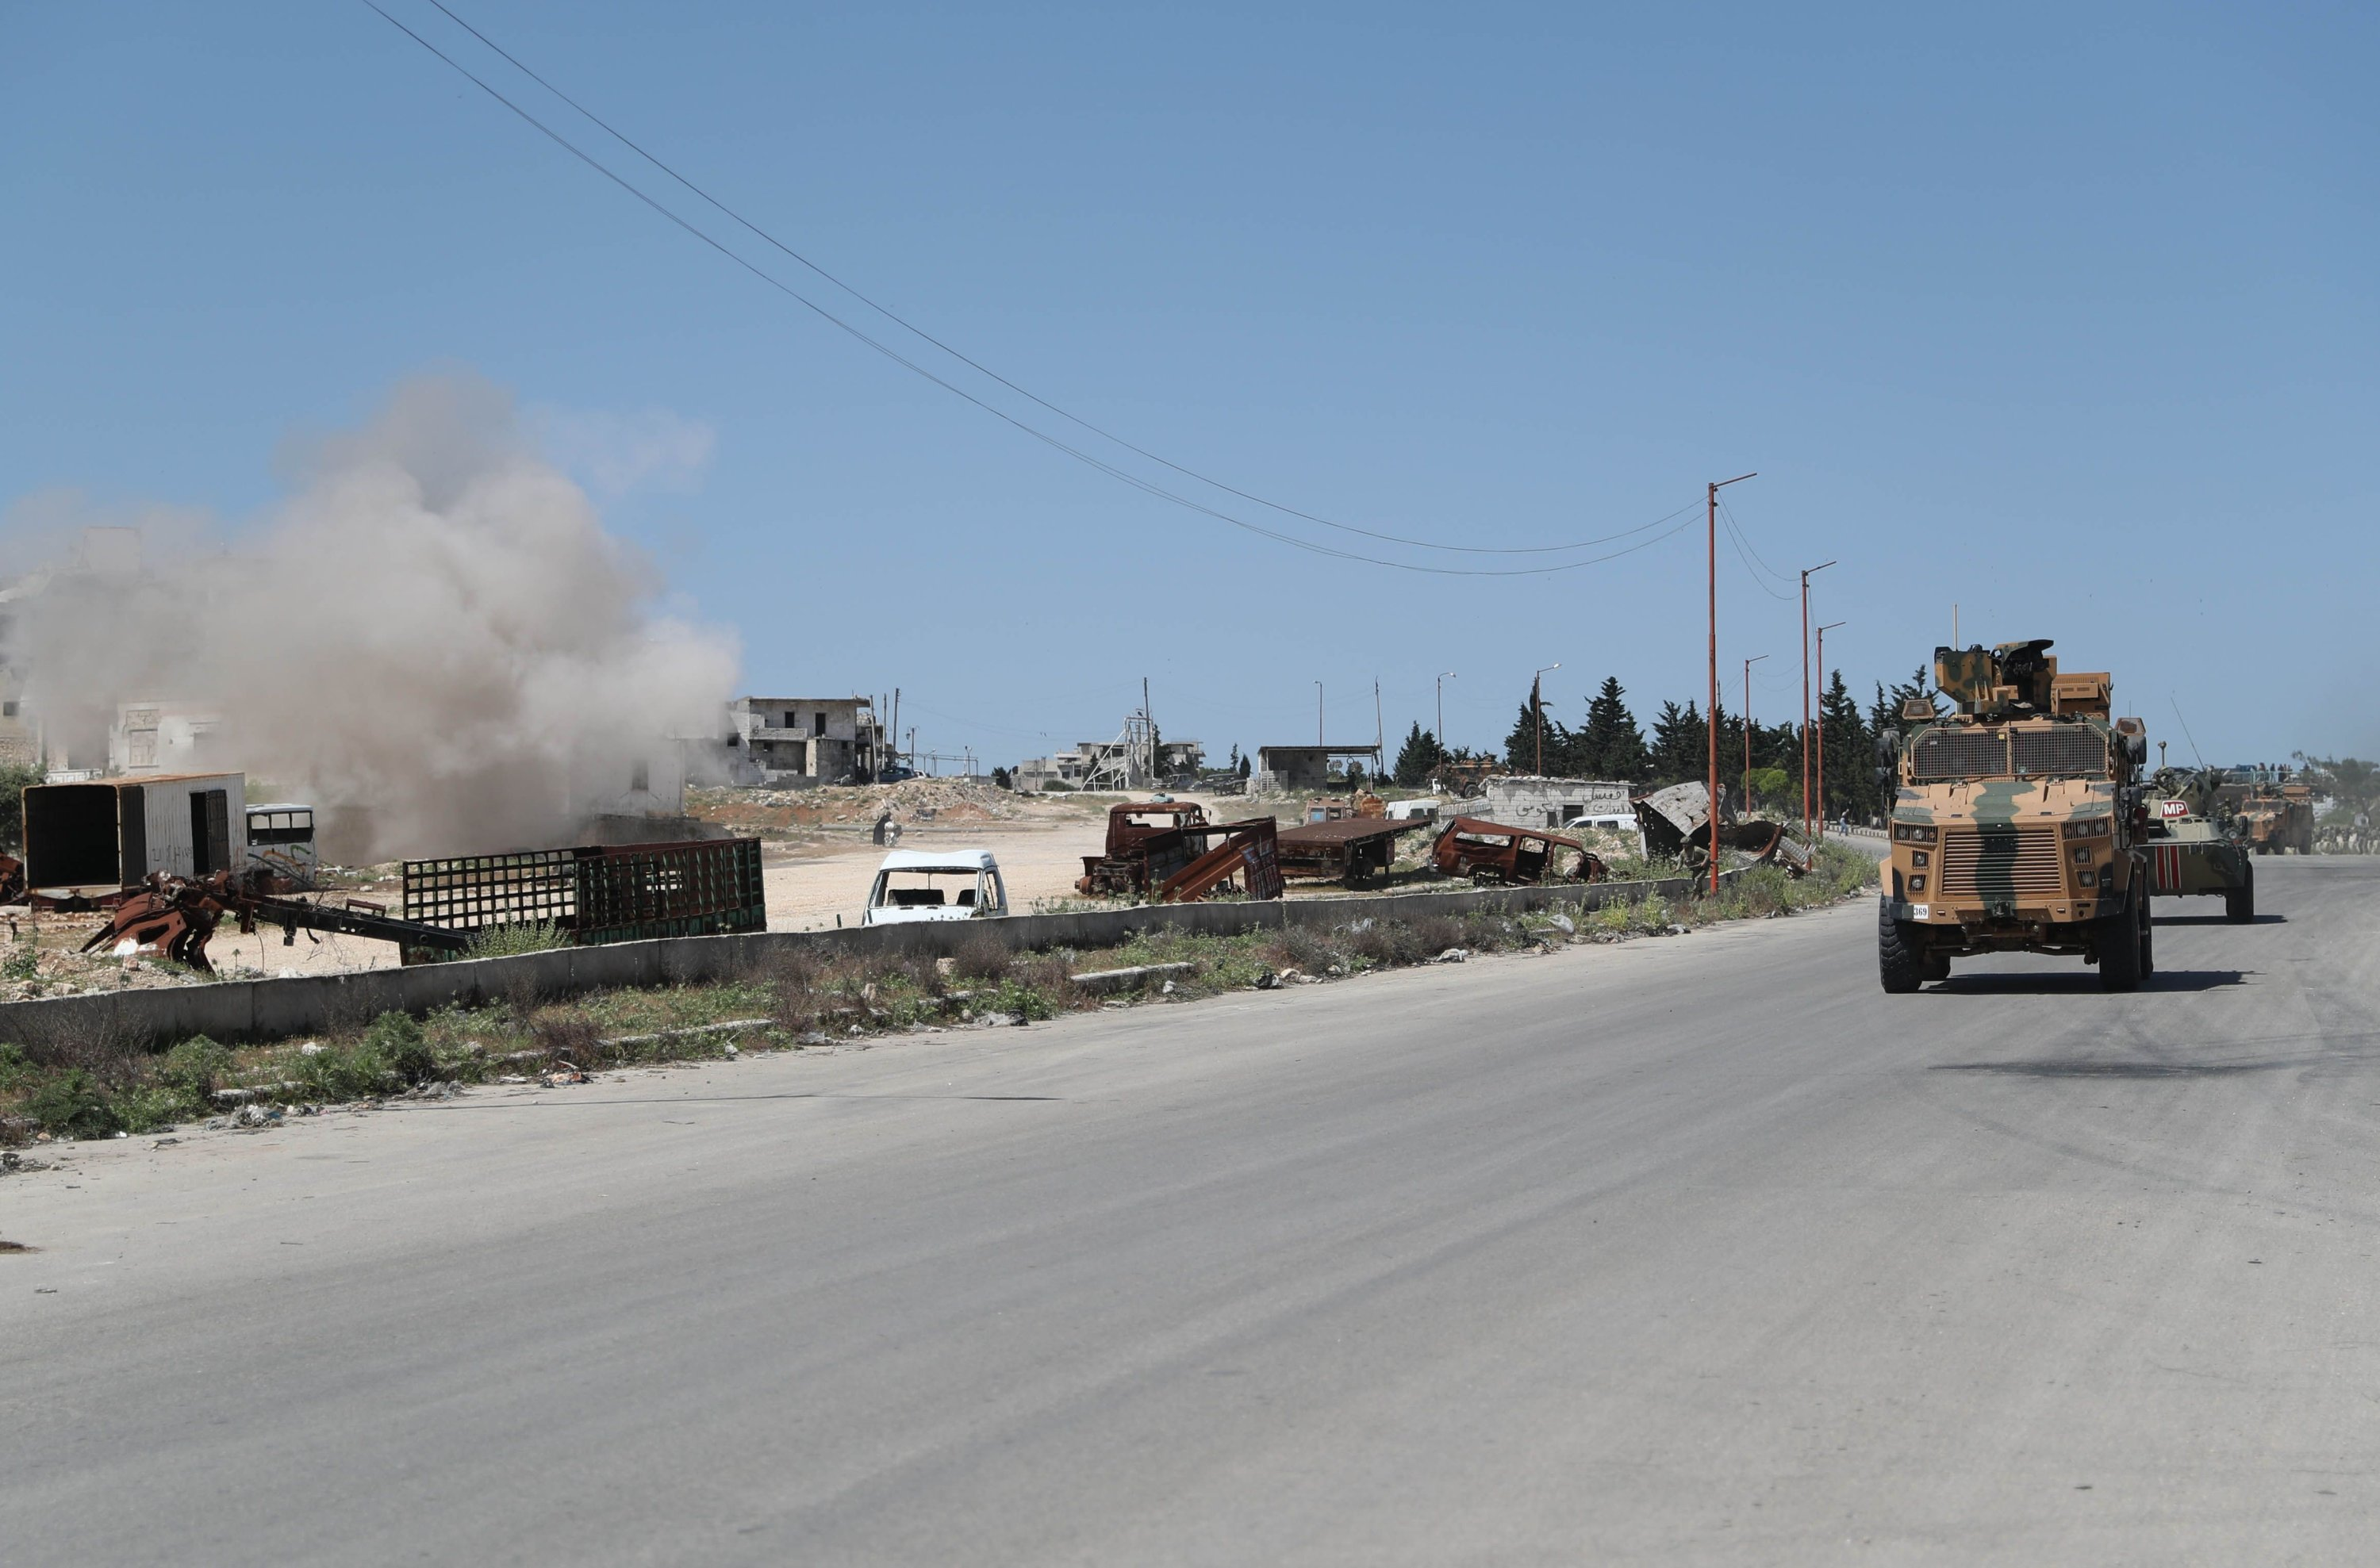 Vehicles in a joint Turkish-Russian military patrol drive along the M4 highway, which links the northern Syrian provinces of Aleppo and Latakia, near Ariha in Syria's northwestern Idlib province, May 12, 2020. (AFP)